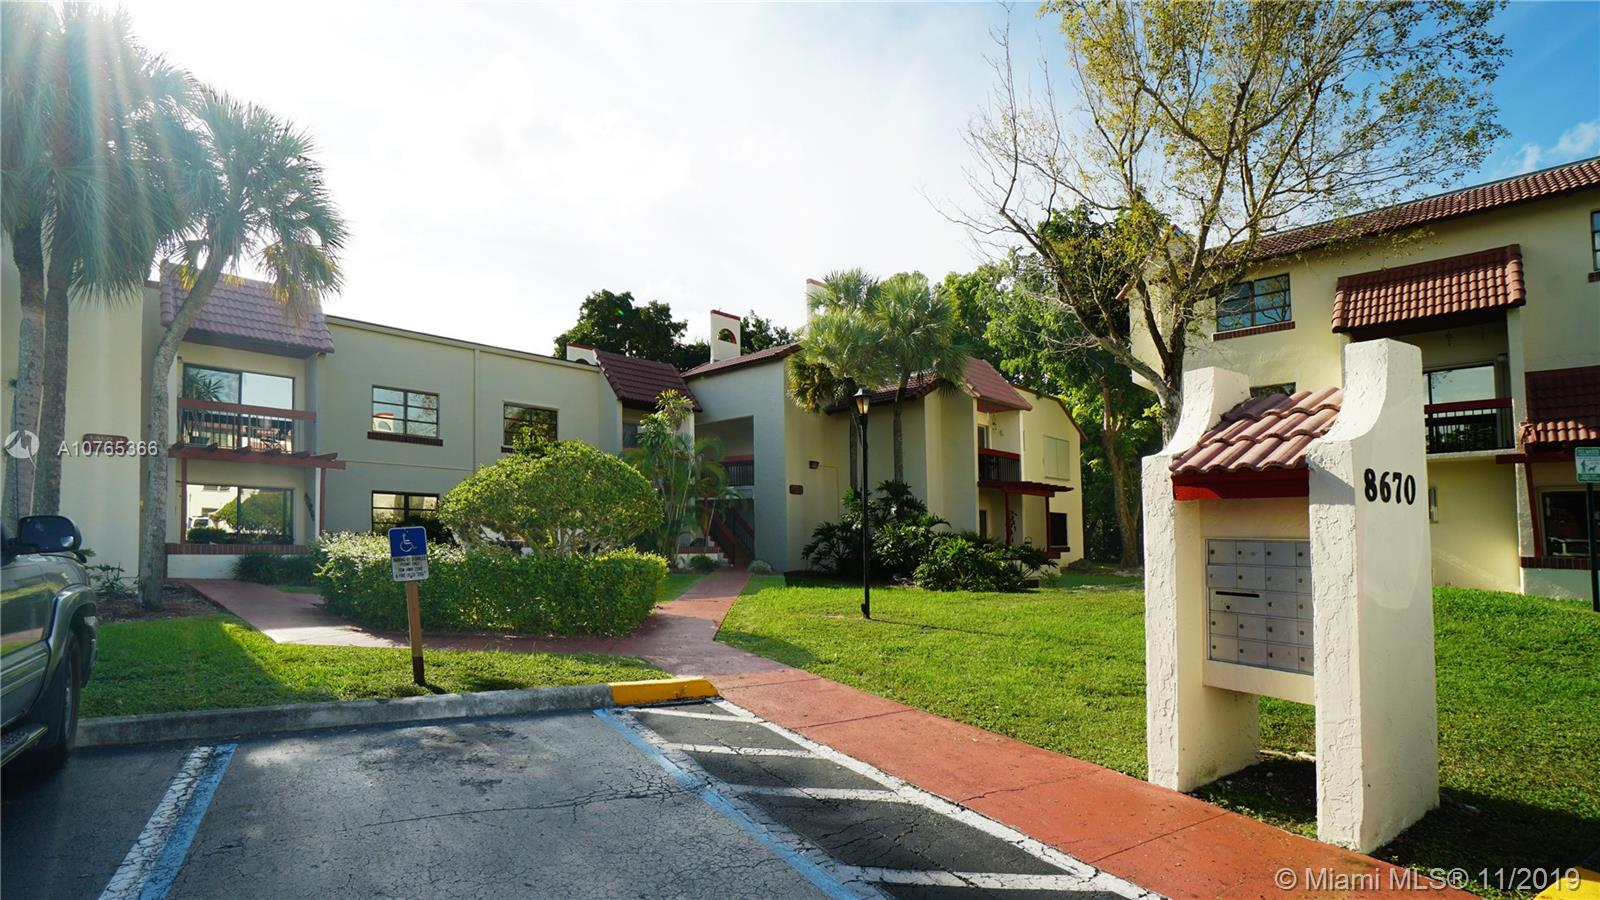 8670 SW 149th Ave #103 For Sale A10765366, FL